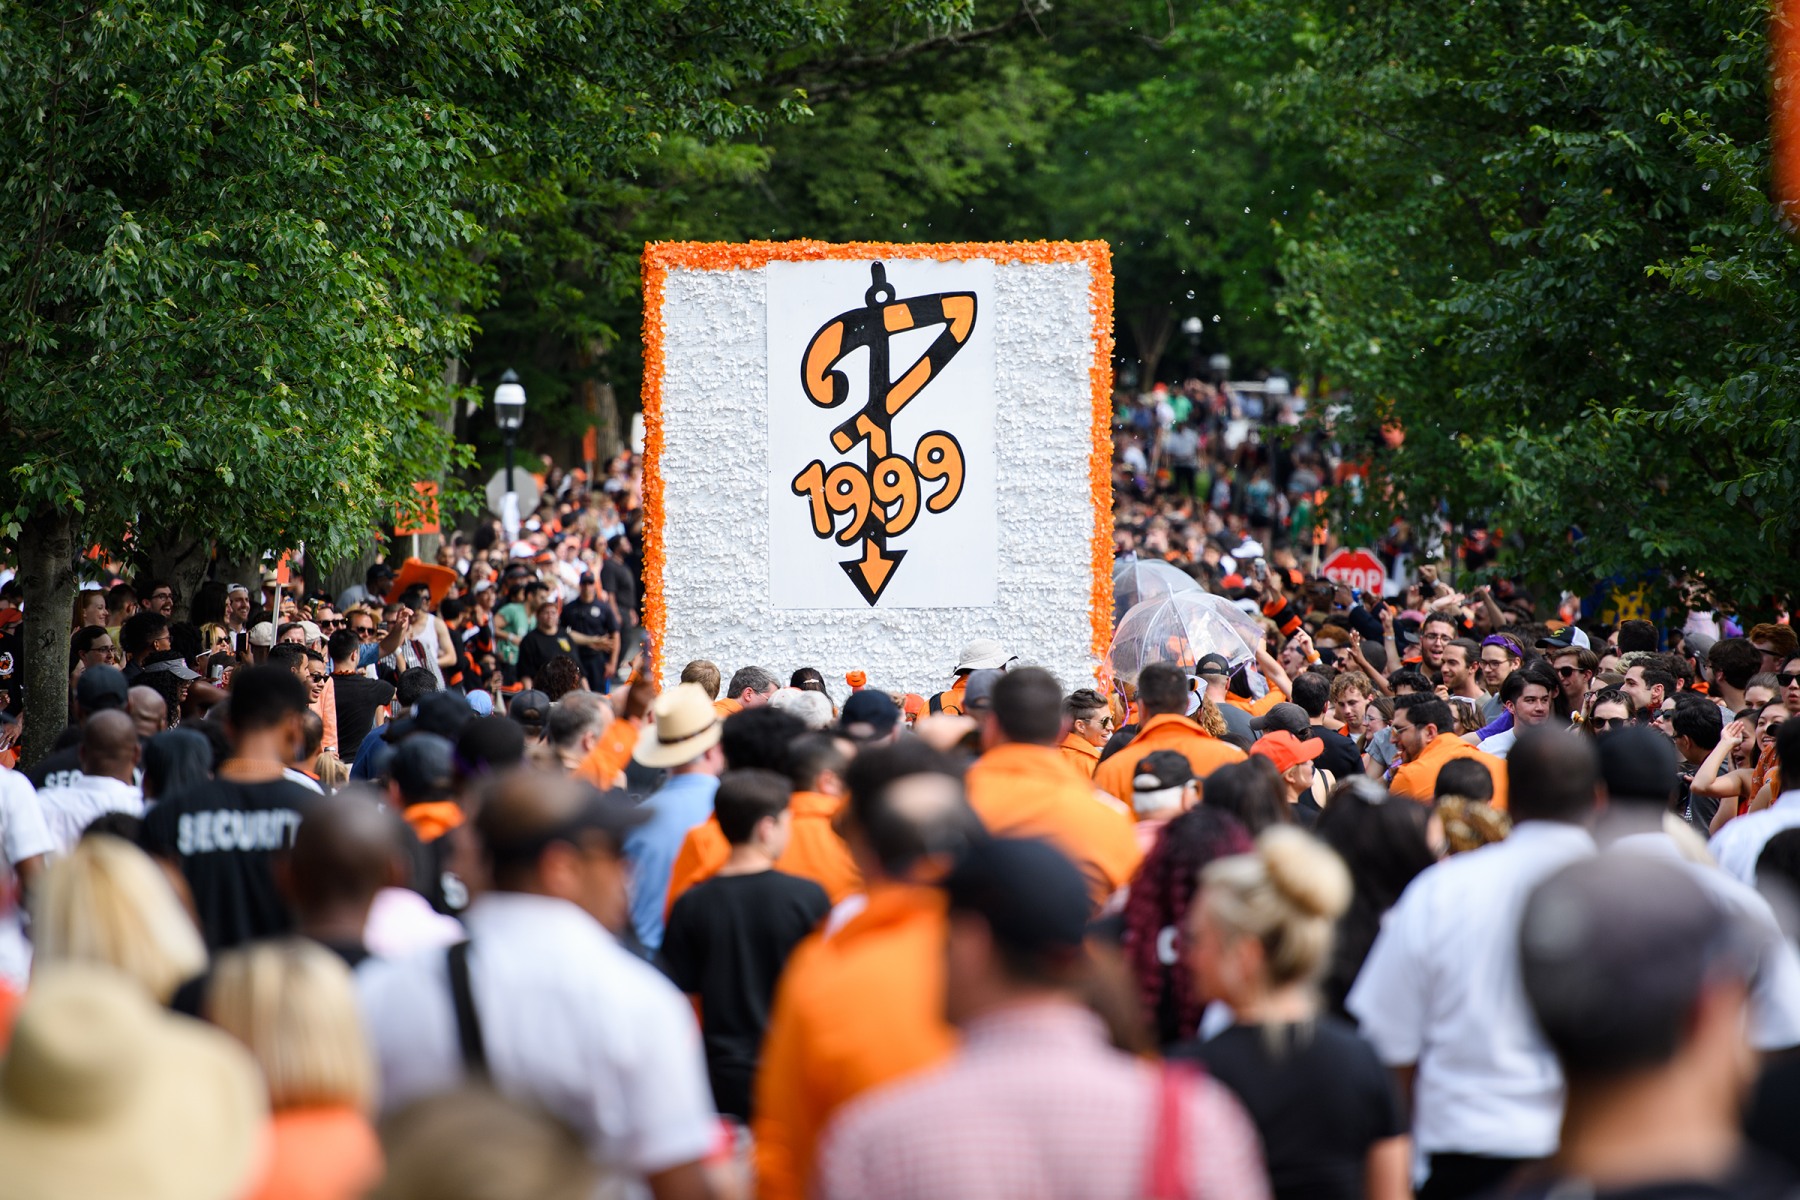 Reunions P-Rade and Class of 1999 sign